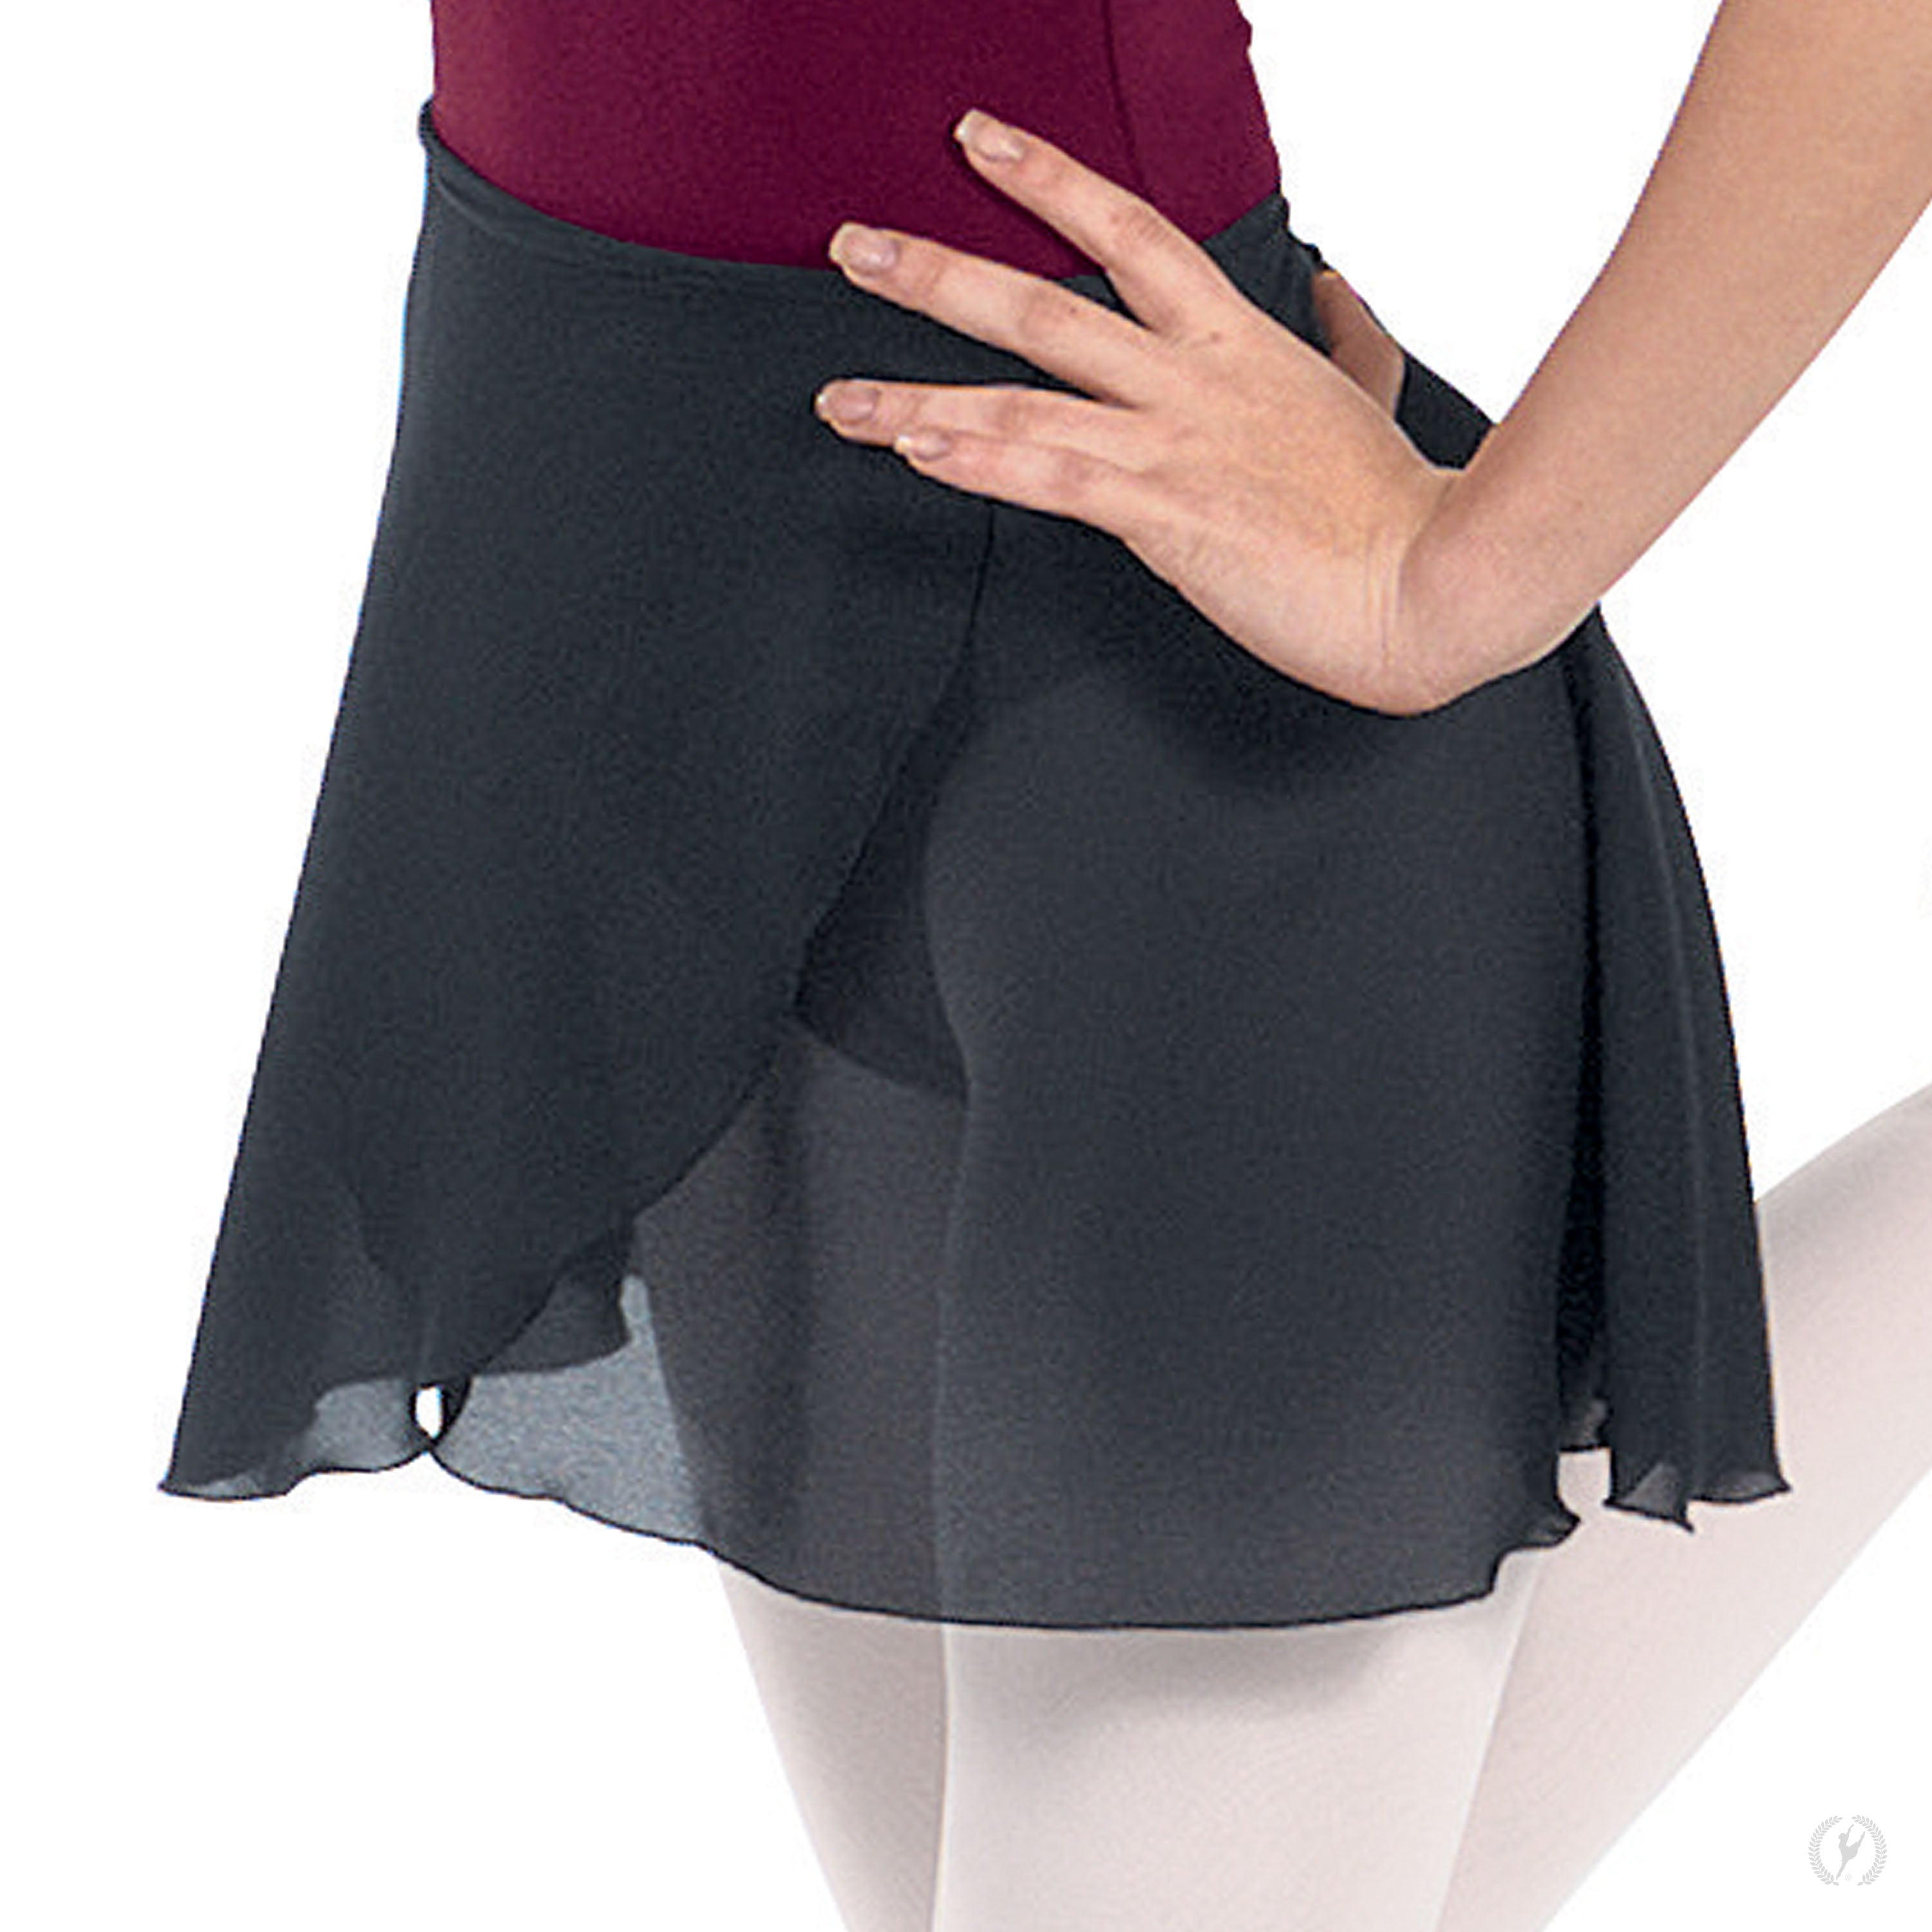 Eurotard Women's Wrap Skirt - 10362P